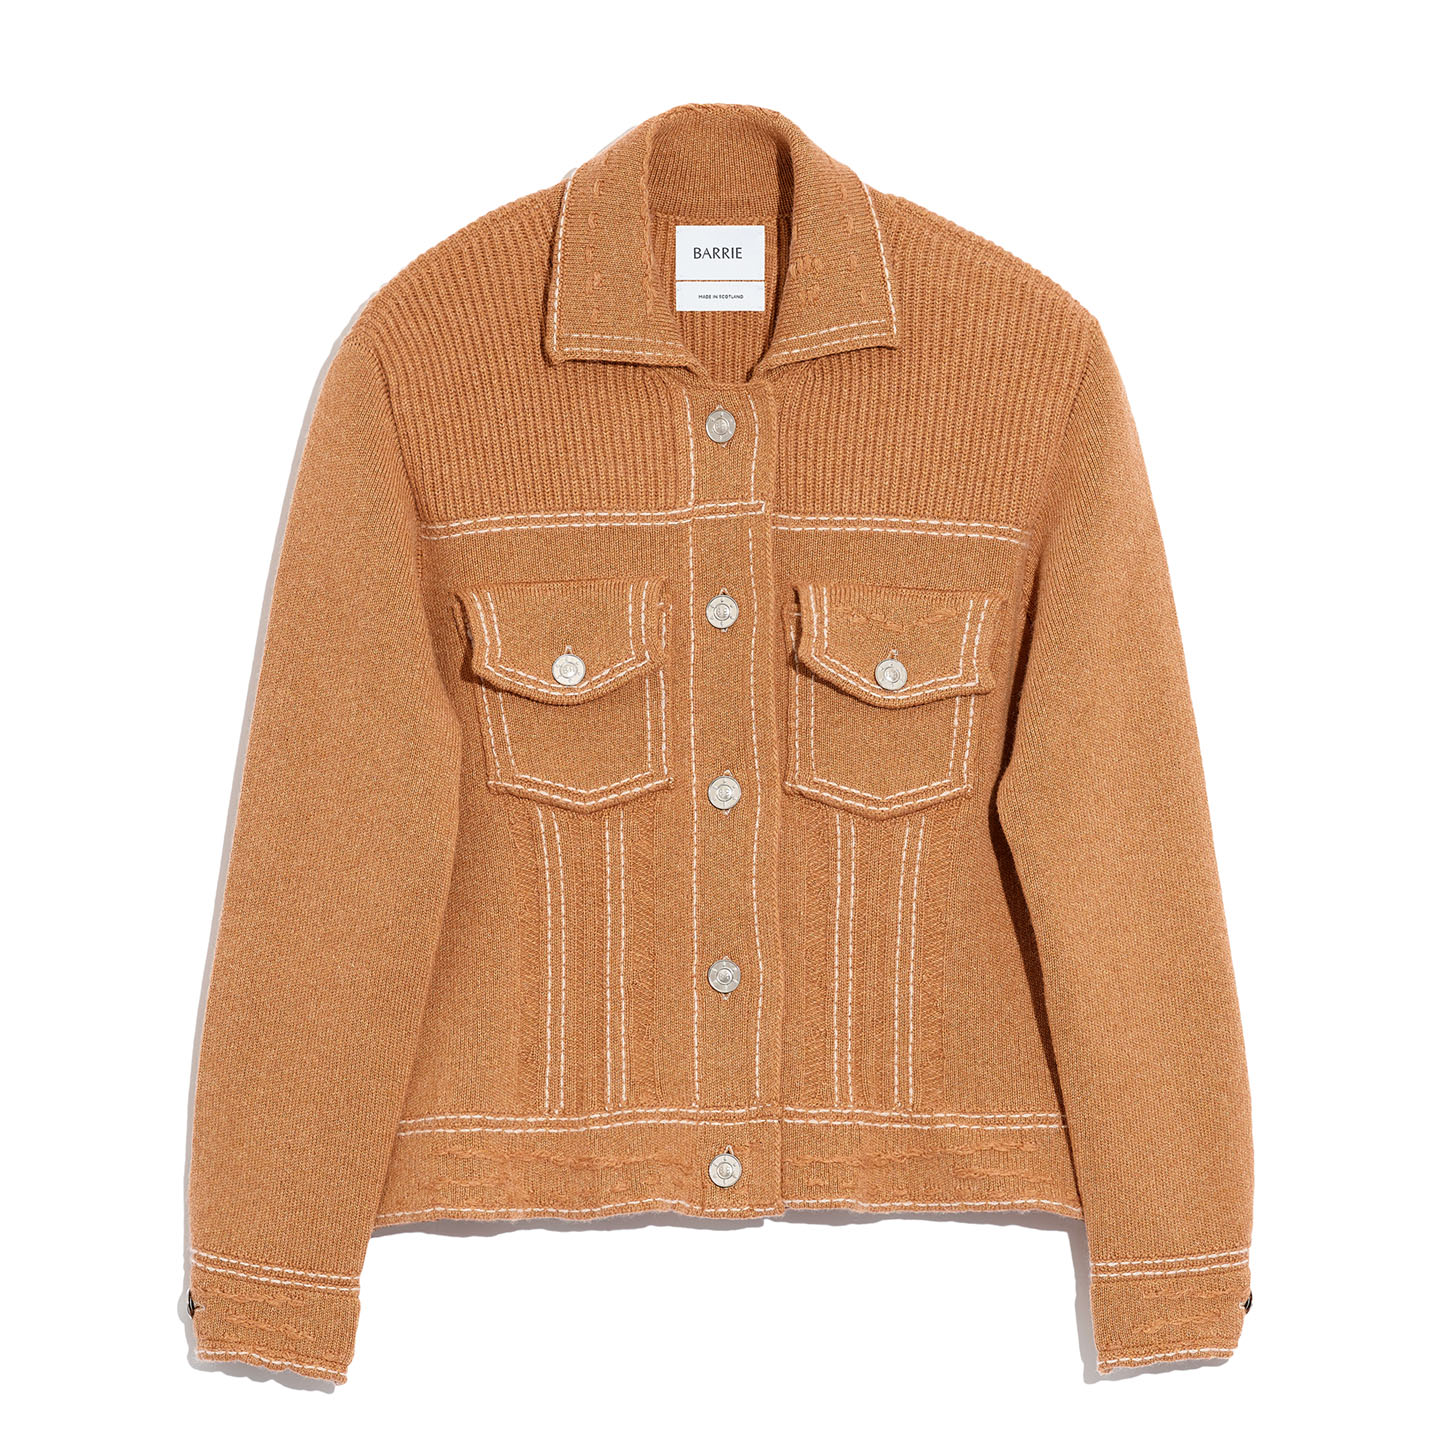 Fitted cashmere and cotton jacket